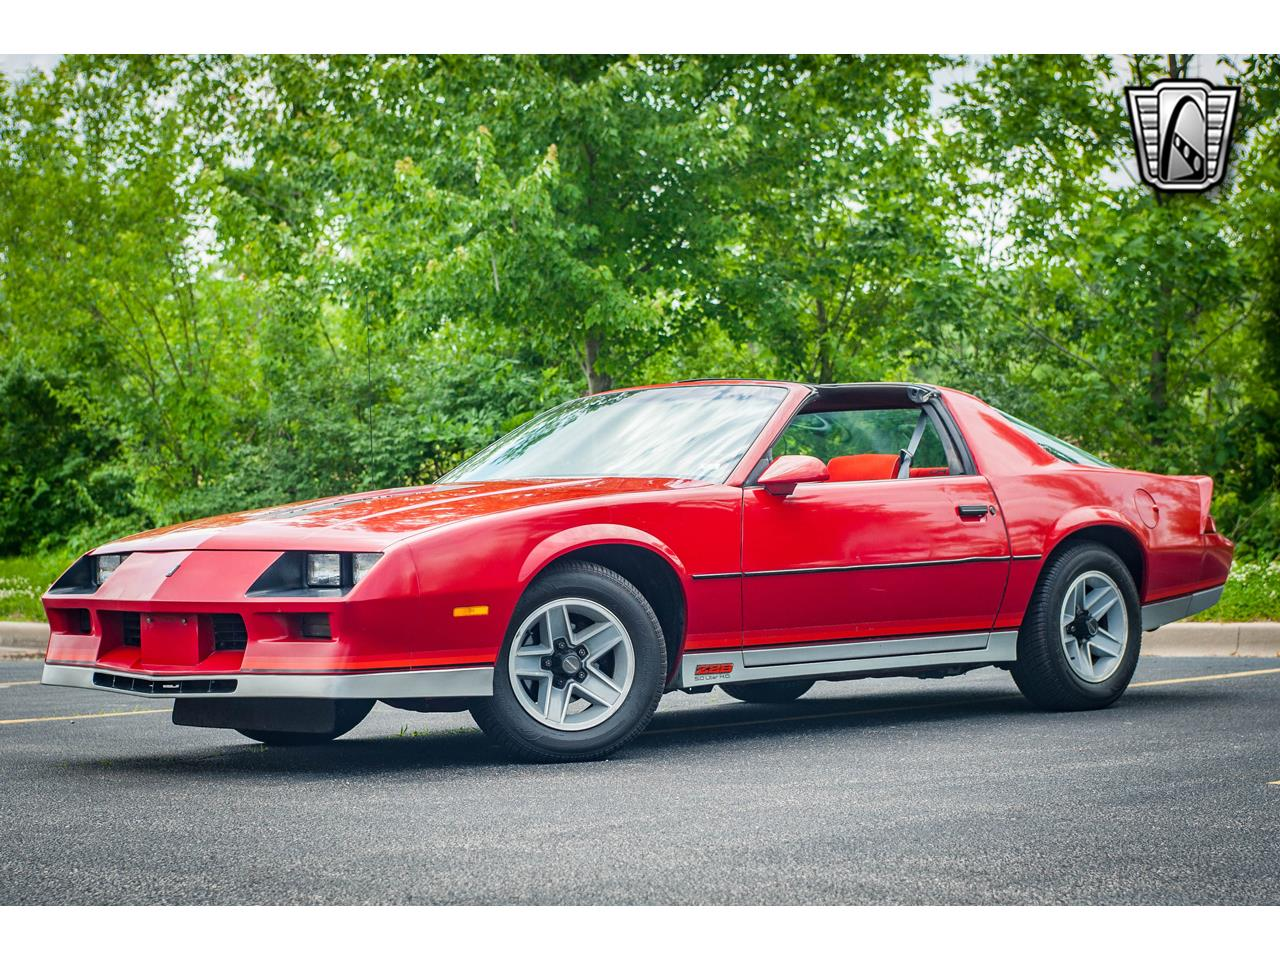 Large Picture of '84 Camaro located in Illinois - $9,500.00 Offered by Gateway Classic Cars - St. Louis - QB9Y